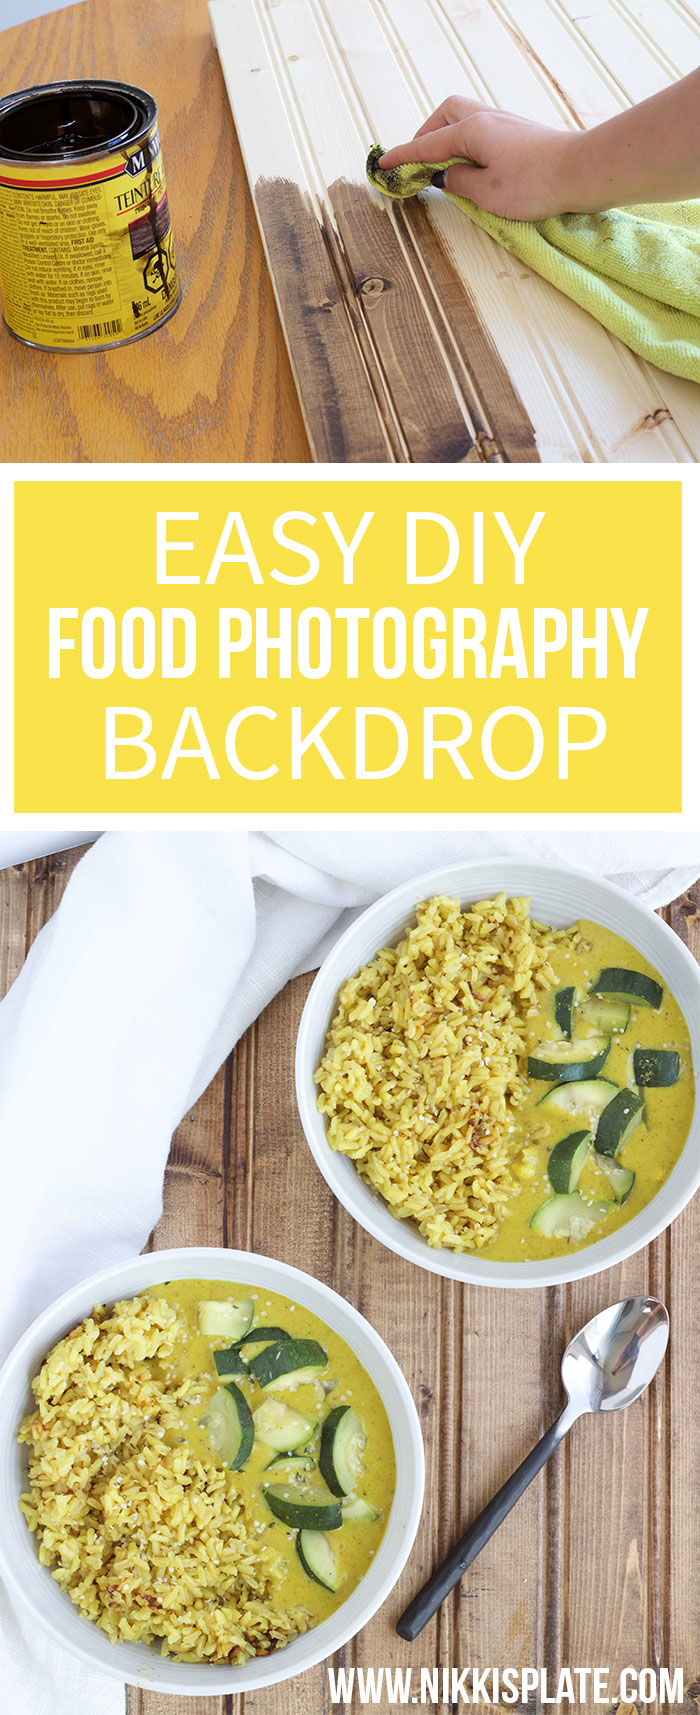 Easy DIY Food Photography Backdrop - step by step guide! - www.nikkisplate.com